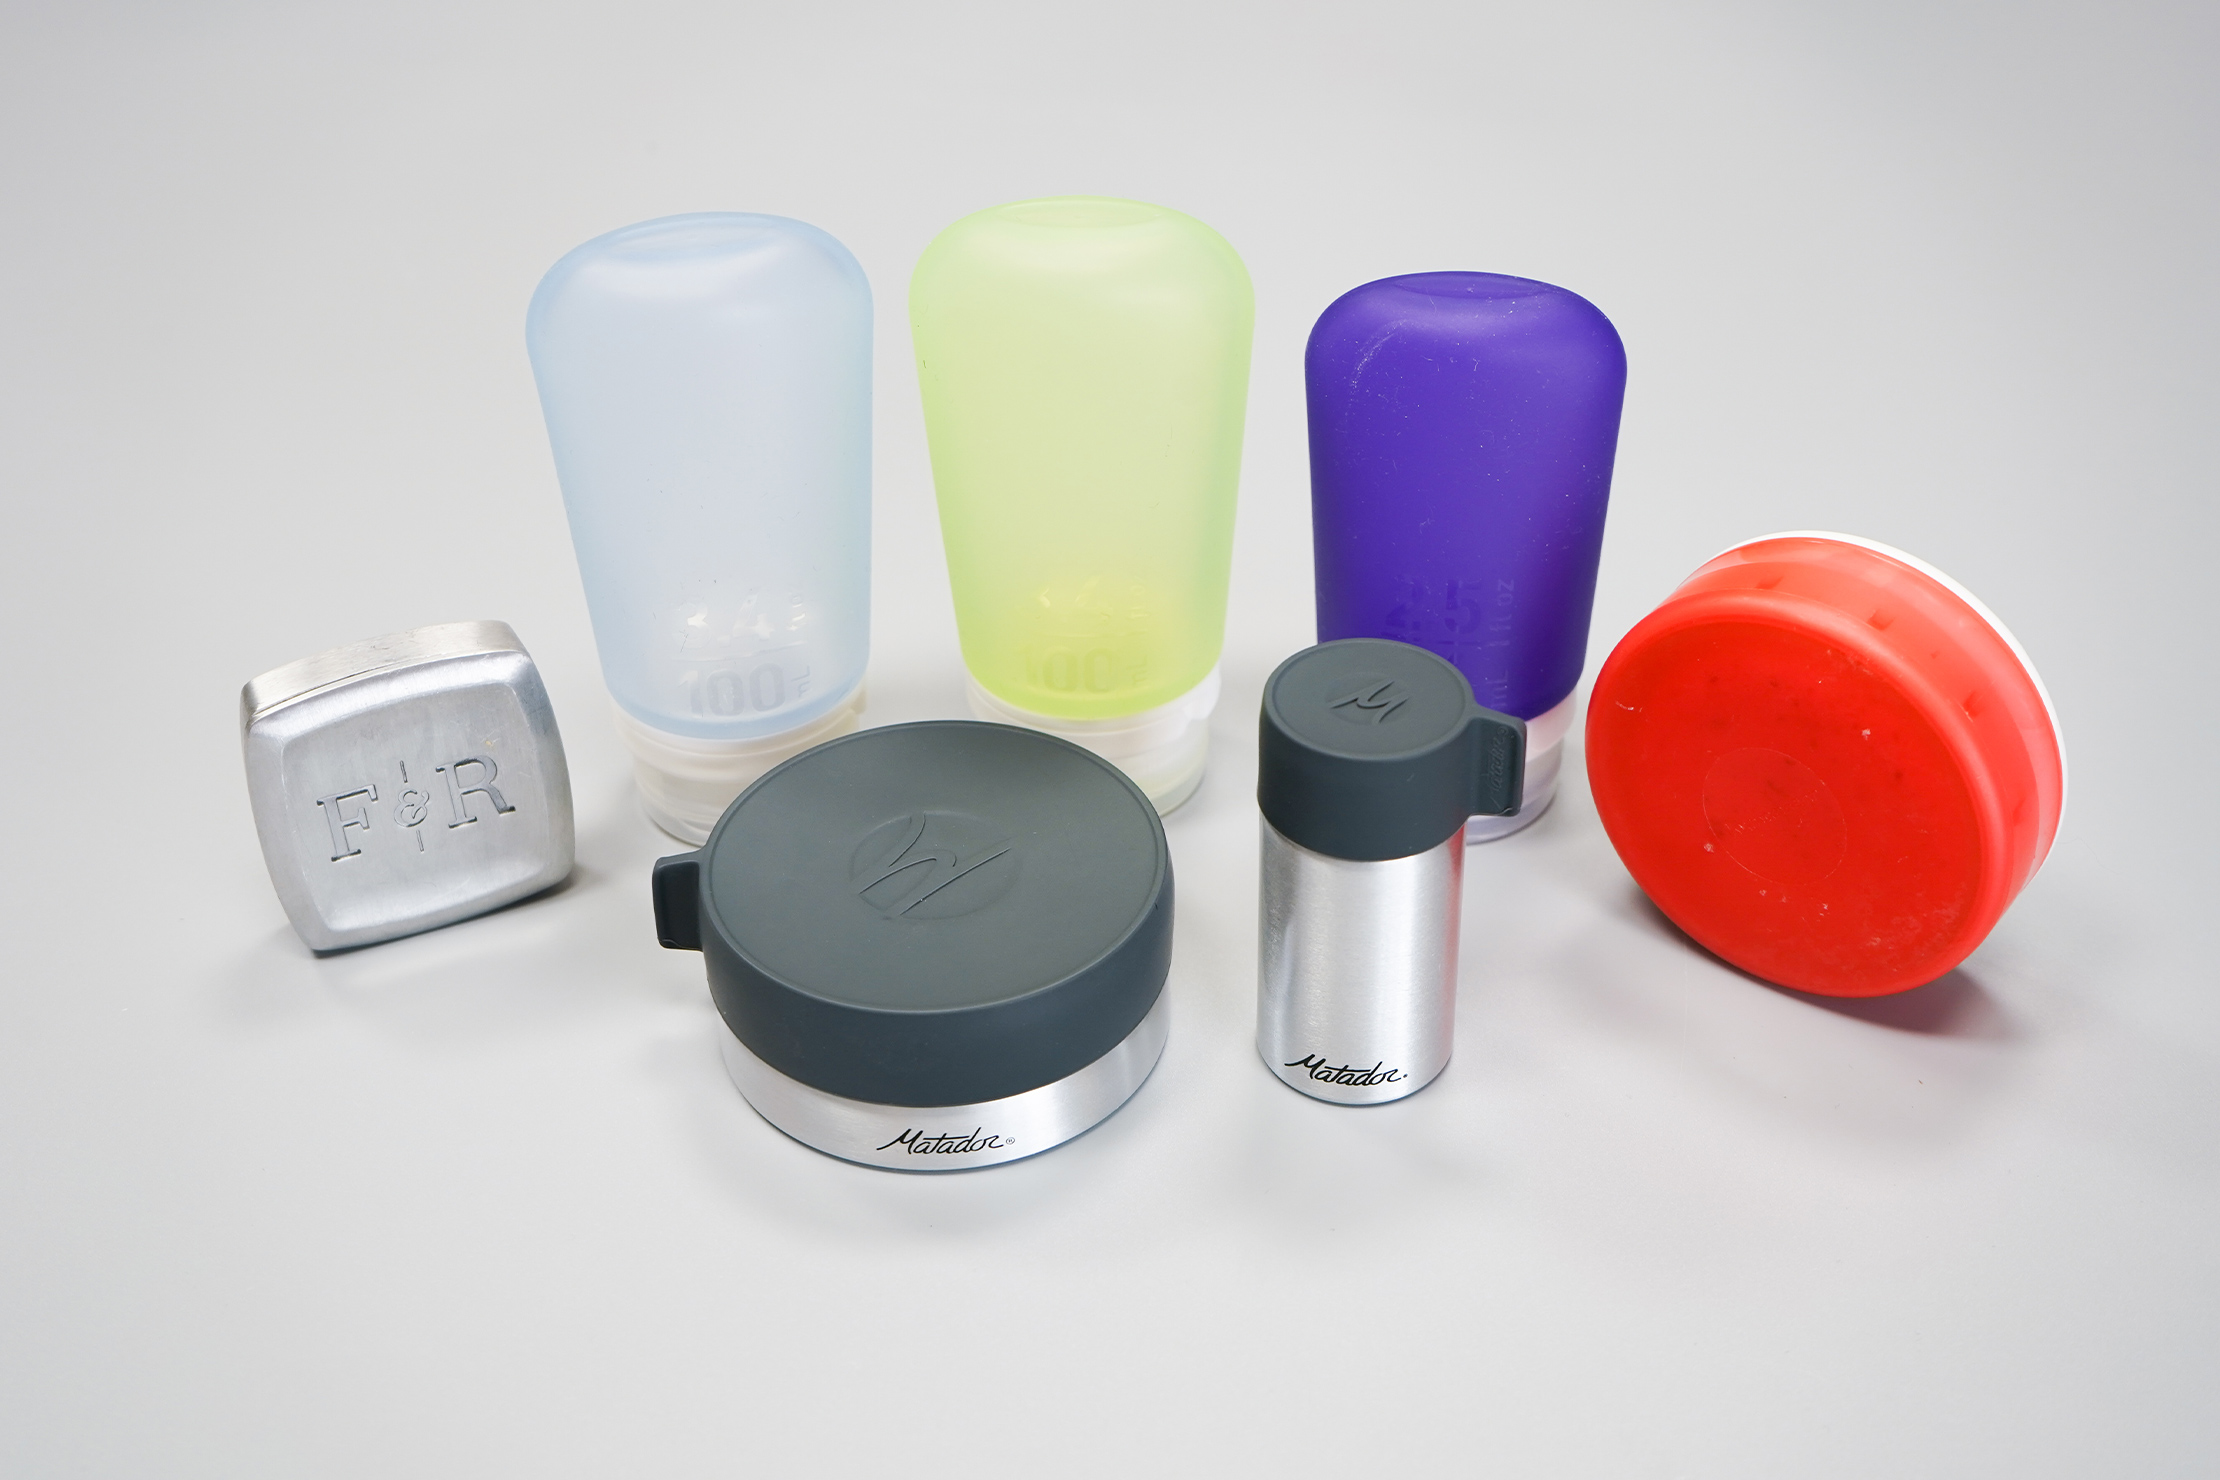 Matador Waterproof Travel Canisters | Toiletry use